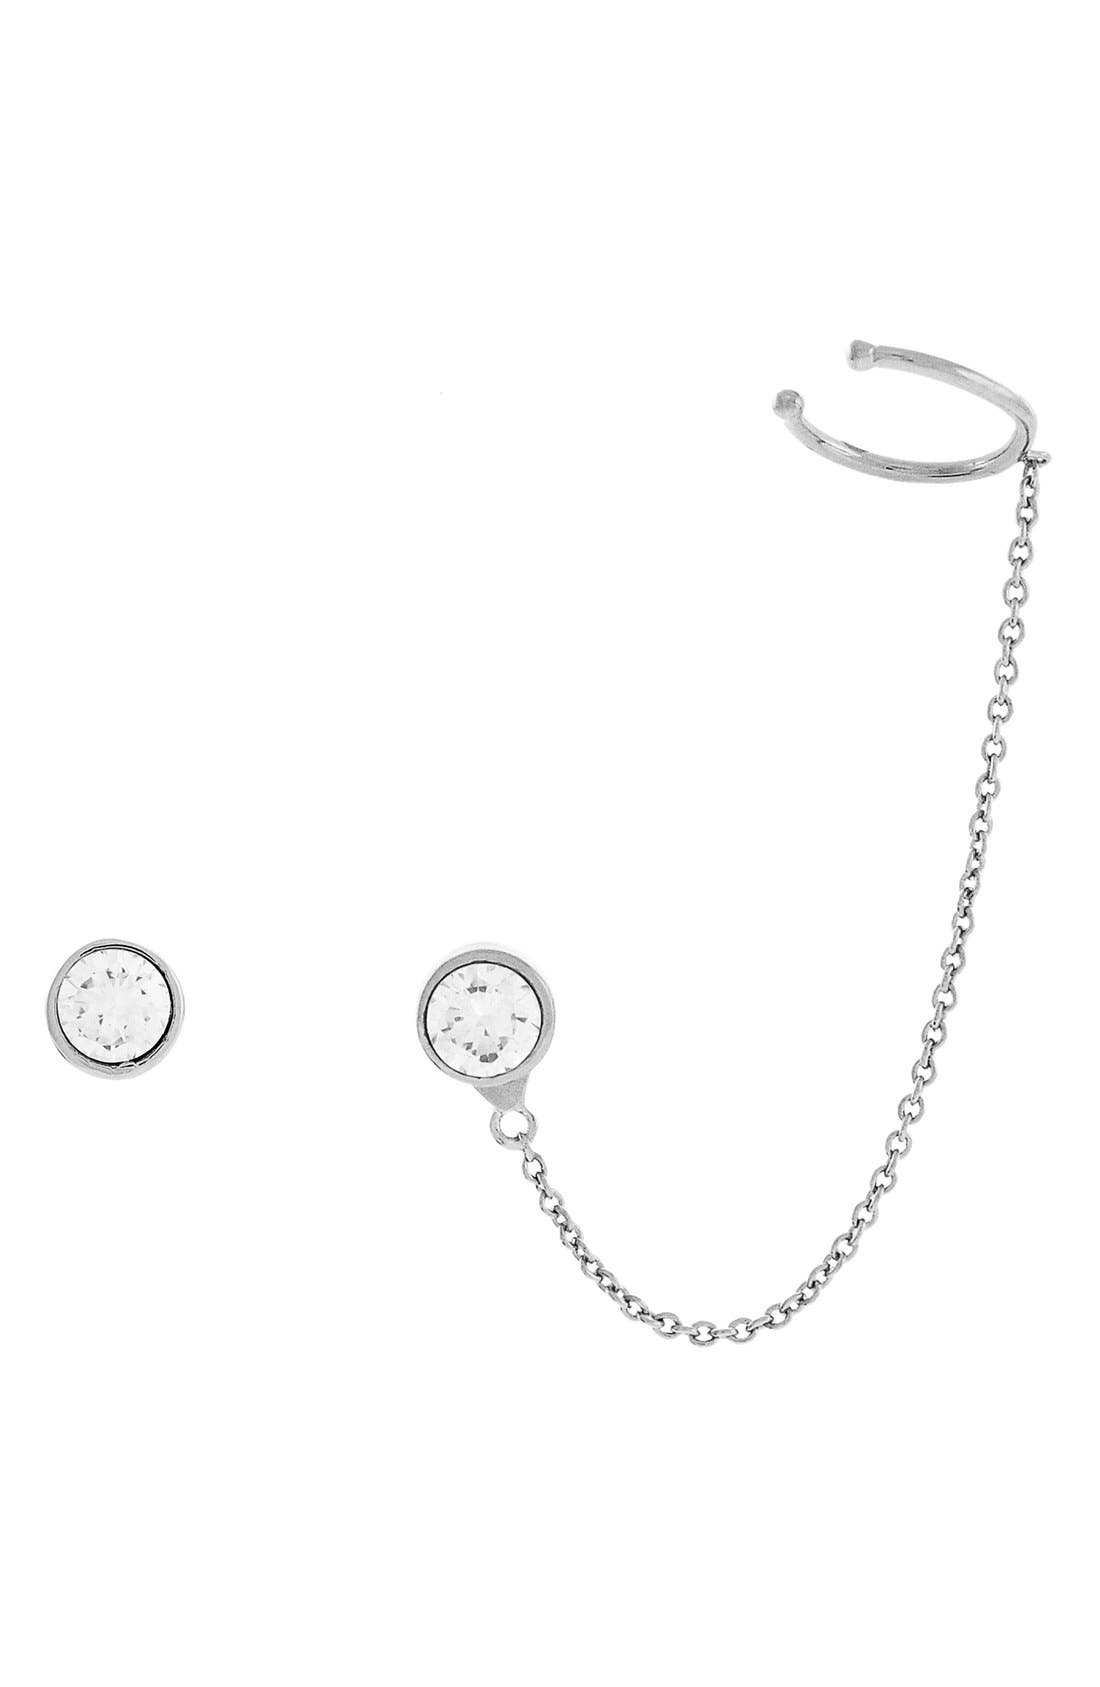 Main Image - Vince Camuto Stud & Ear Chain Mismatched Earrings